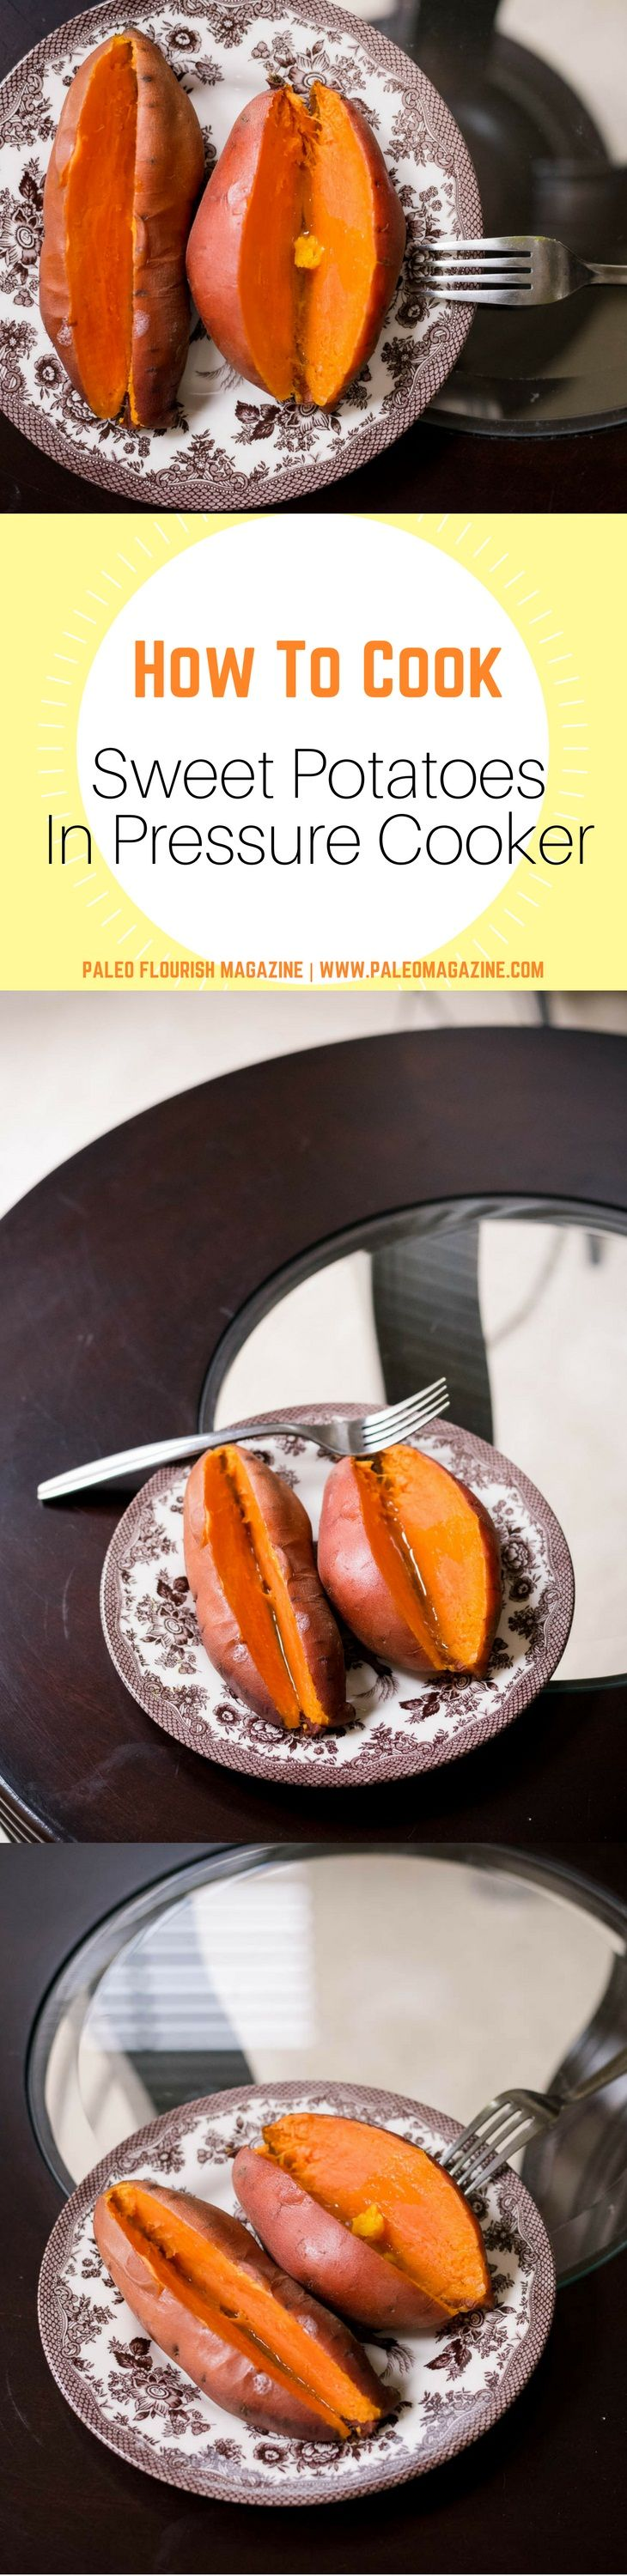 How To Cook Sweet Potatoes In Pressure Cooker #paleo #recipes #glutenfree http://paleomagazine.com/how-to-cook-sweet-potatoes-pressure-cooker